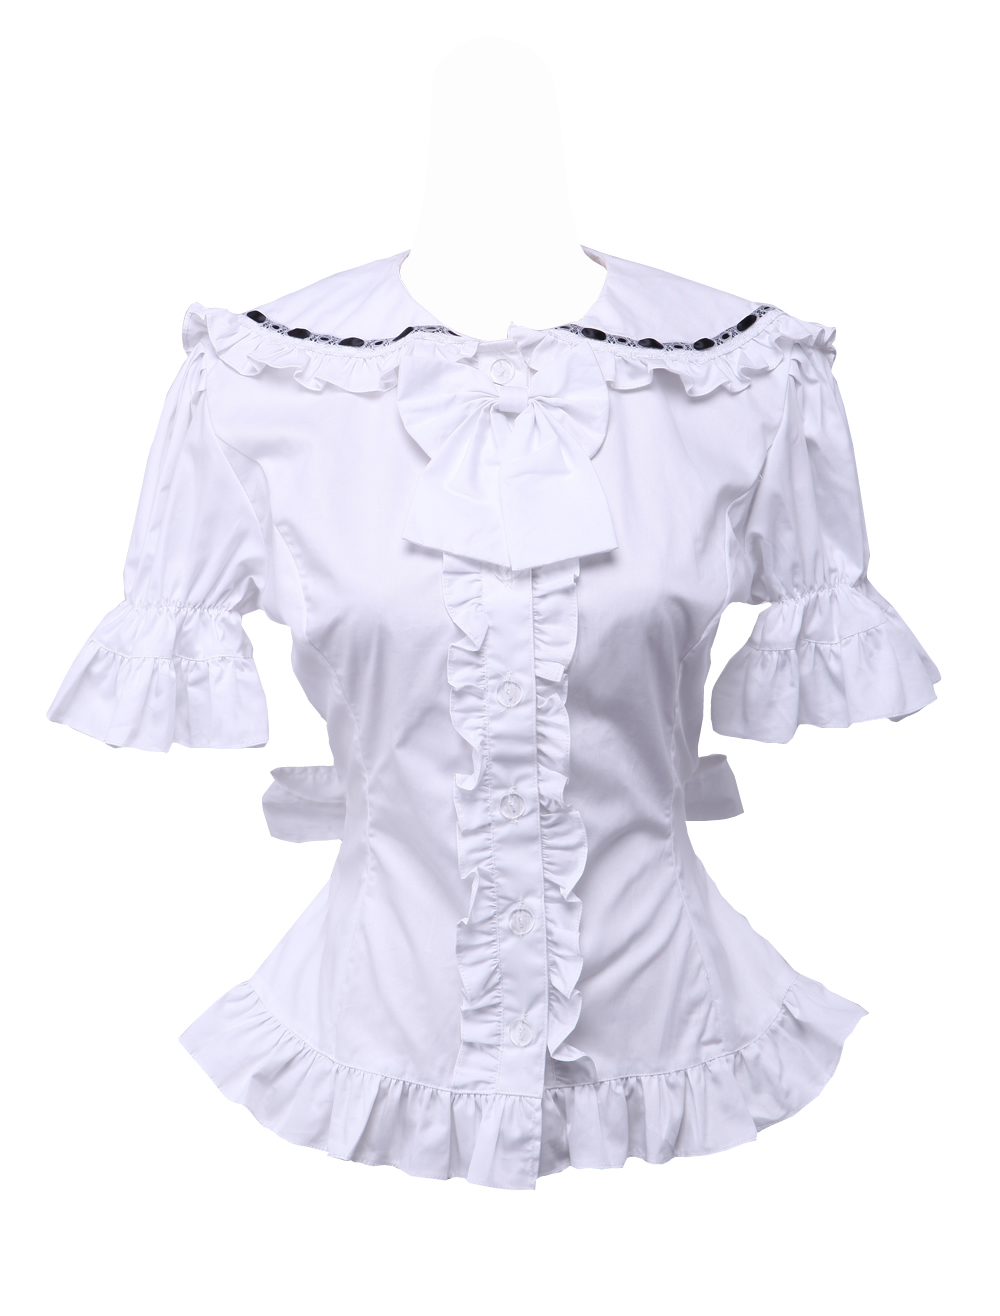 Primary image for White Cotton Bow Ruffle Retro Victorian Sailor Short Sleeve Lolita Blouse